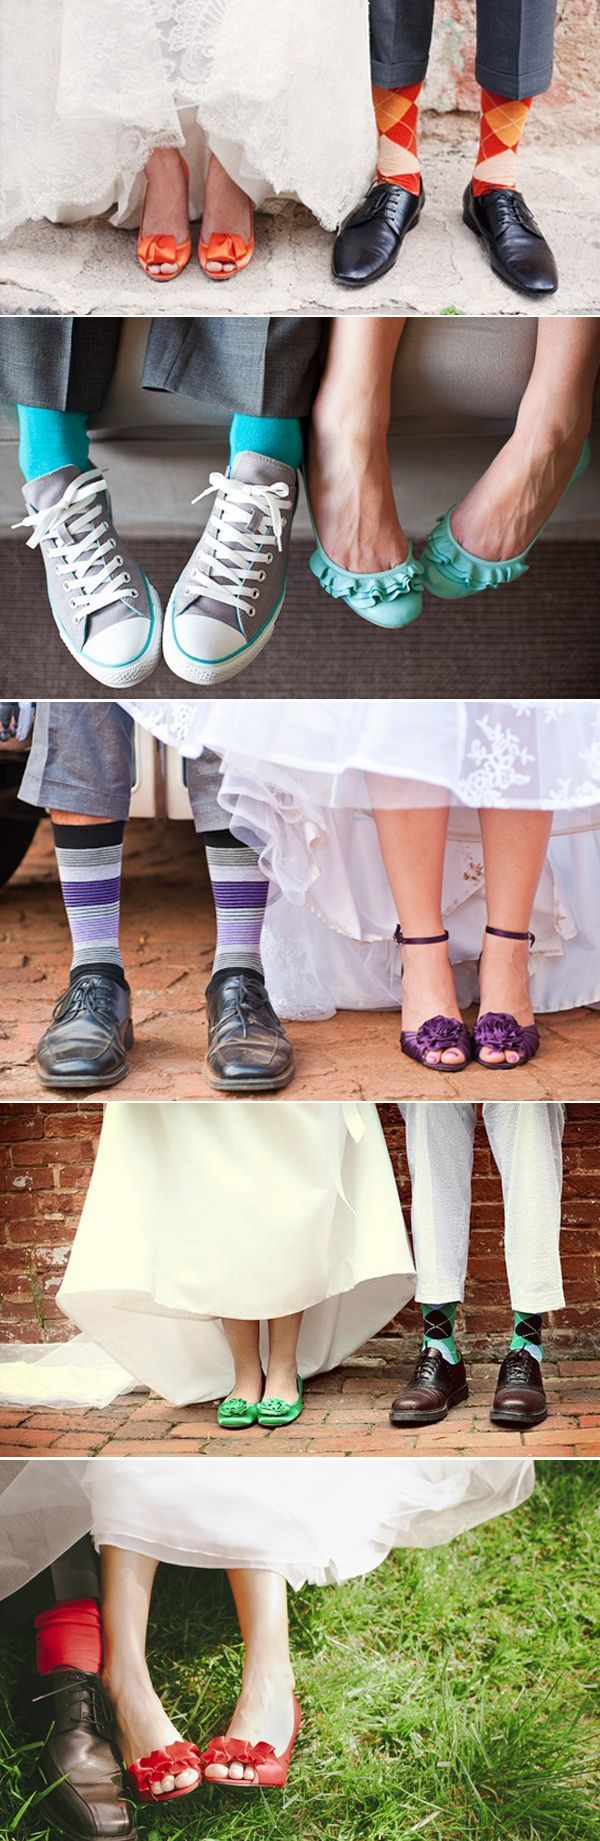 18 Lovely matching shoes - Matching Socks and shoes